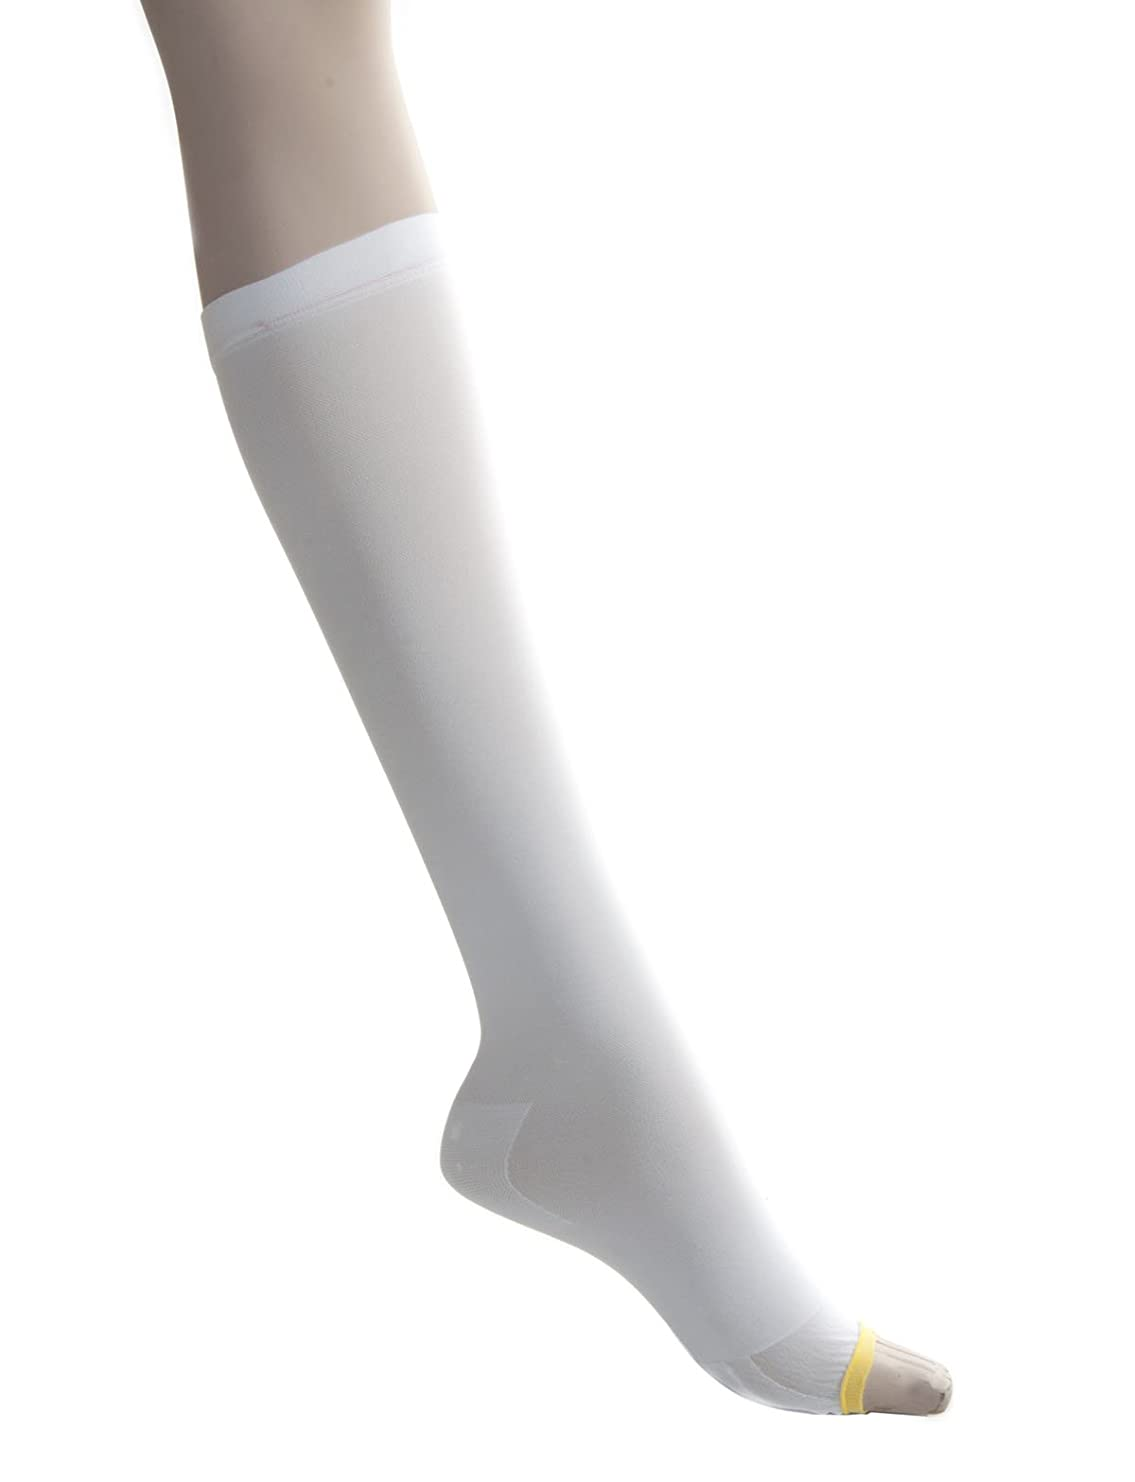 接触メイン最終的にMedline MDS160648 EMS Latex Free Knee-Length Anti-Embolism Stocking, Medium Long, White (Pack of 12) by Medline